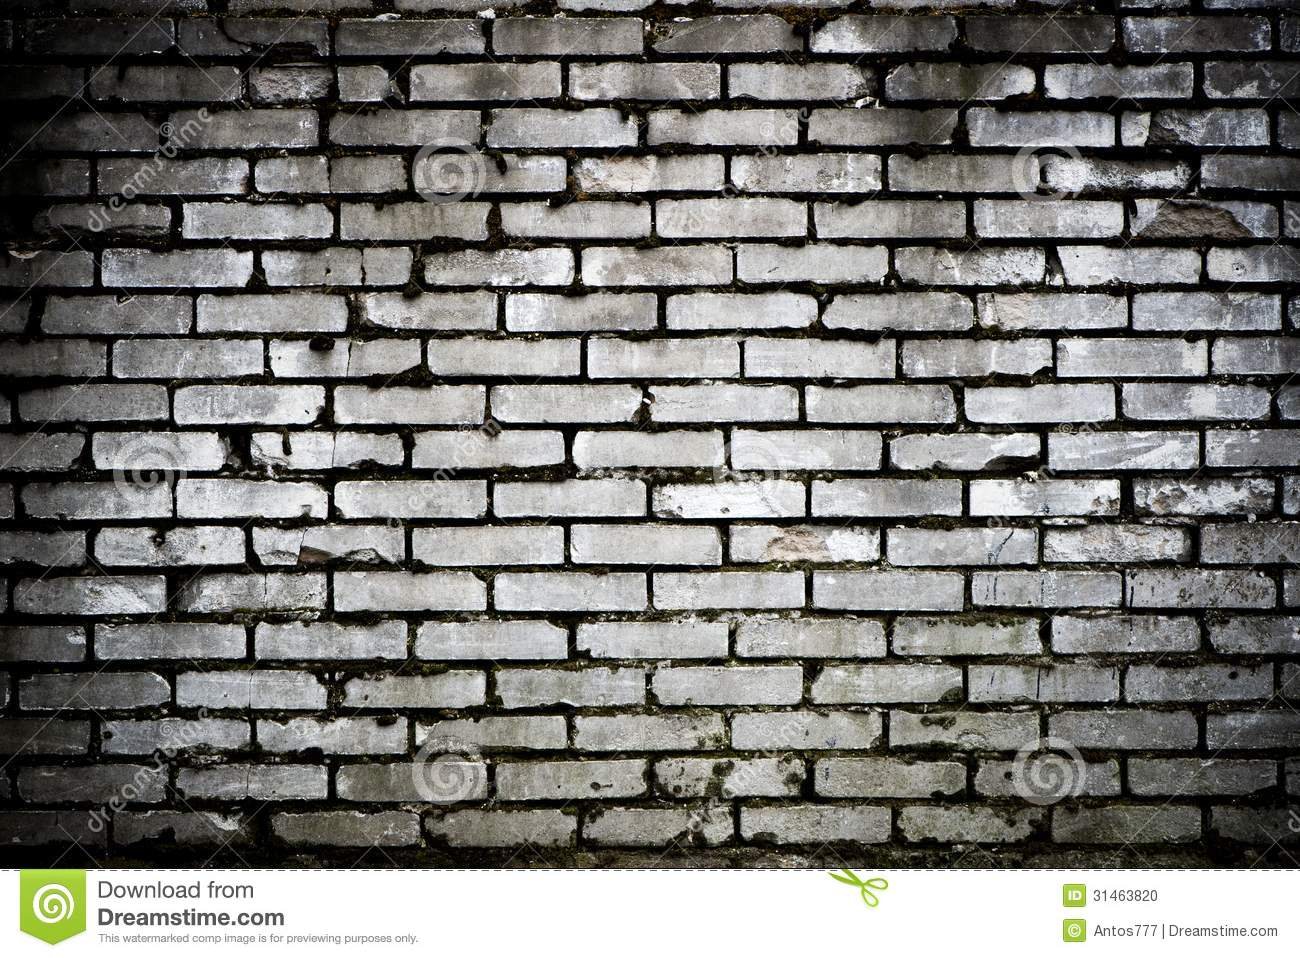 Brick wall   black & white background.